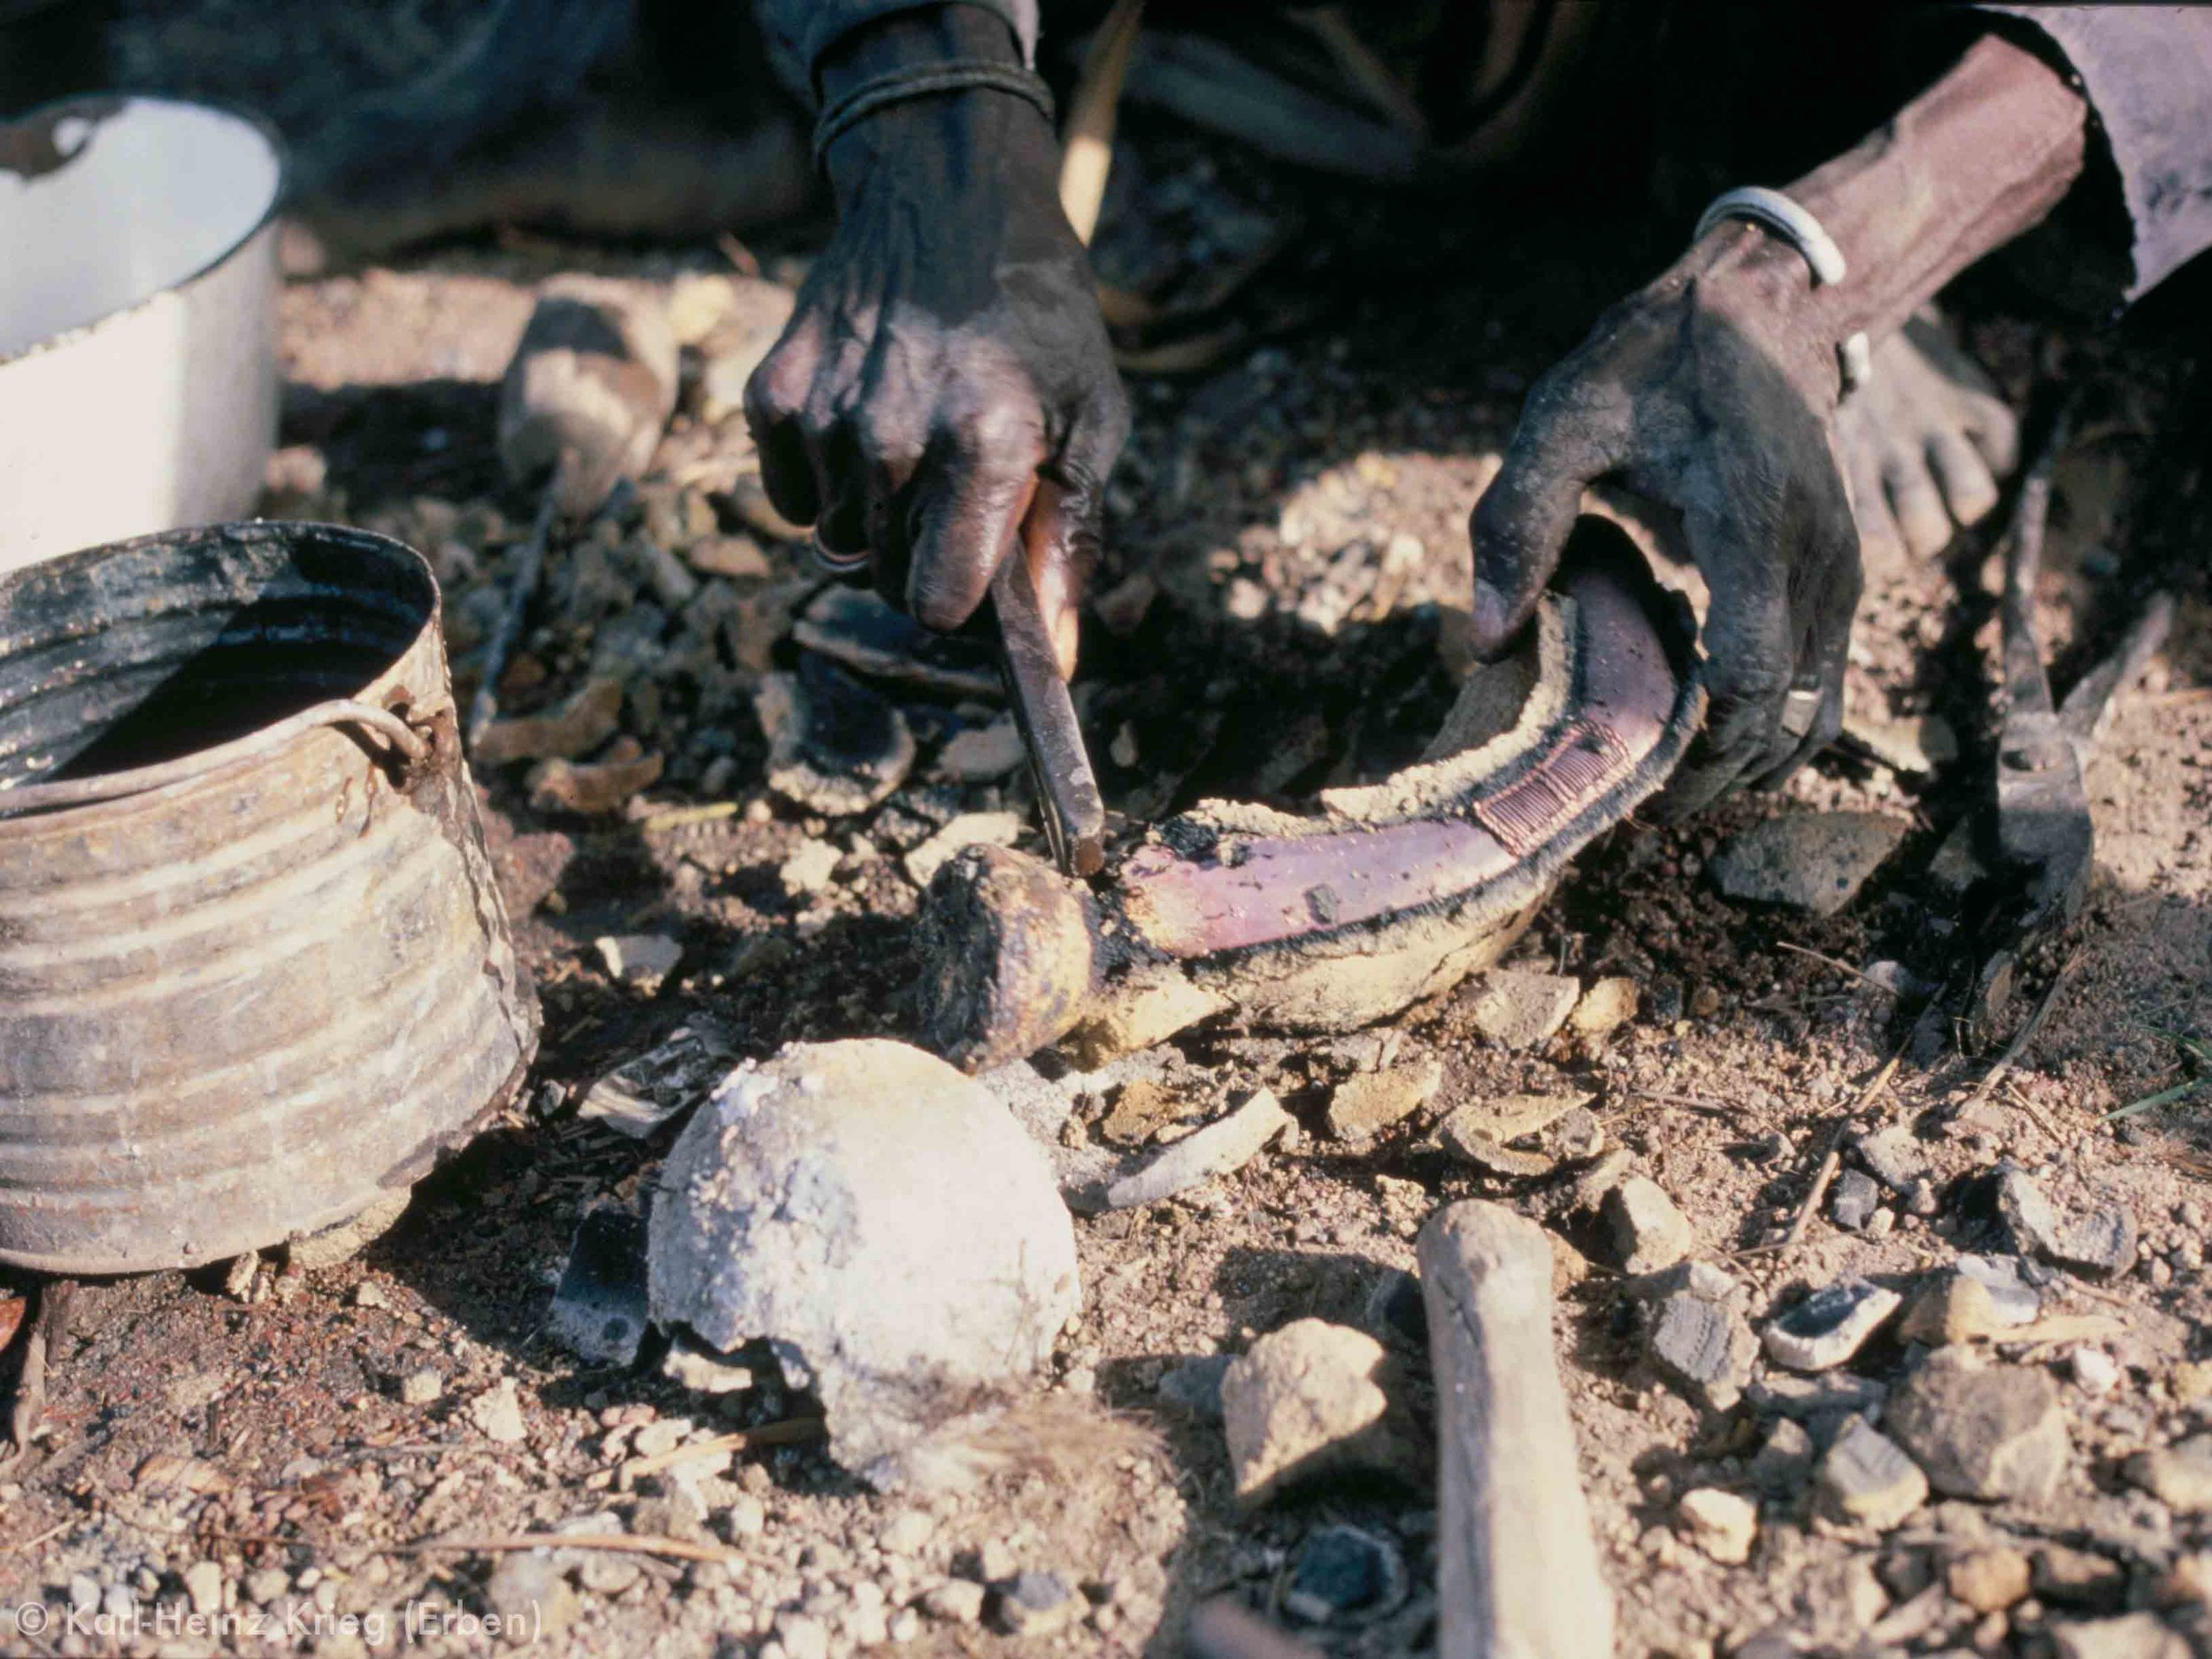 Clay cleaned off bronze bracelet. Photo: Karl-Heinz Krieg, Nafoun (Region of Boundiali, Côte d'Ivoire), 1978